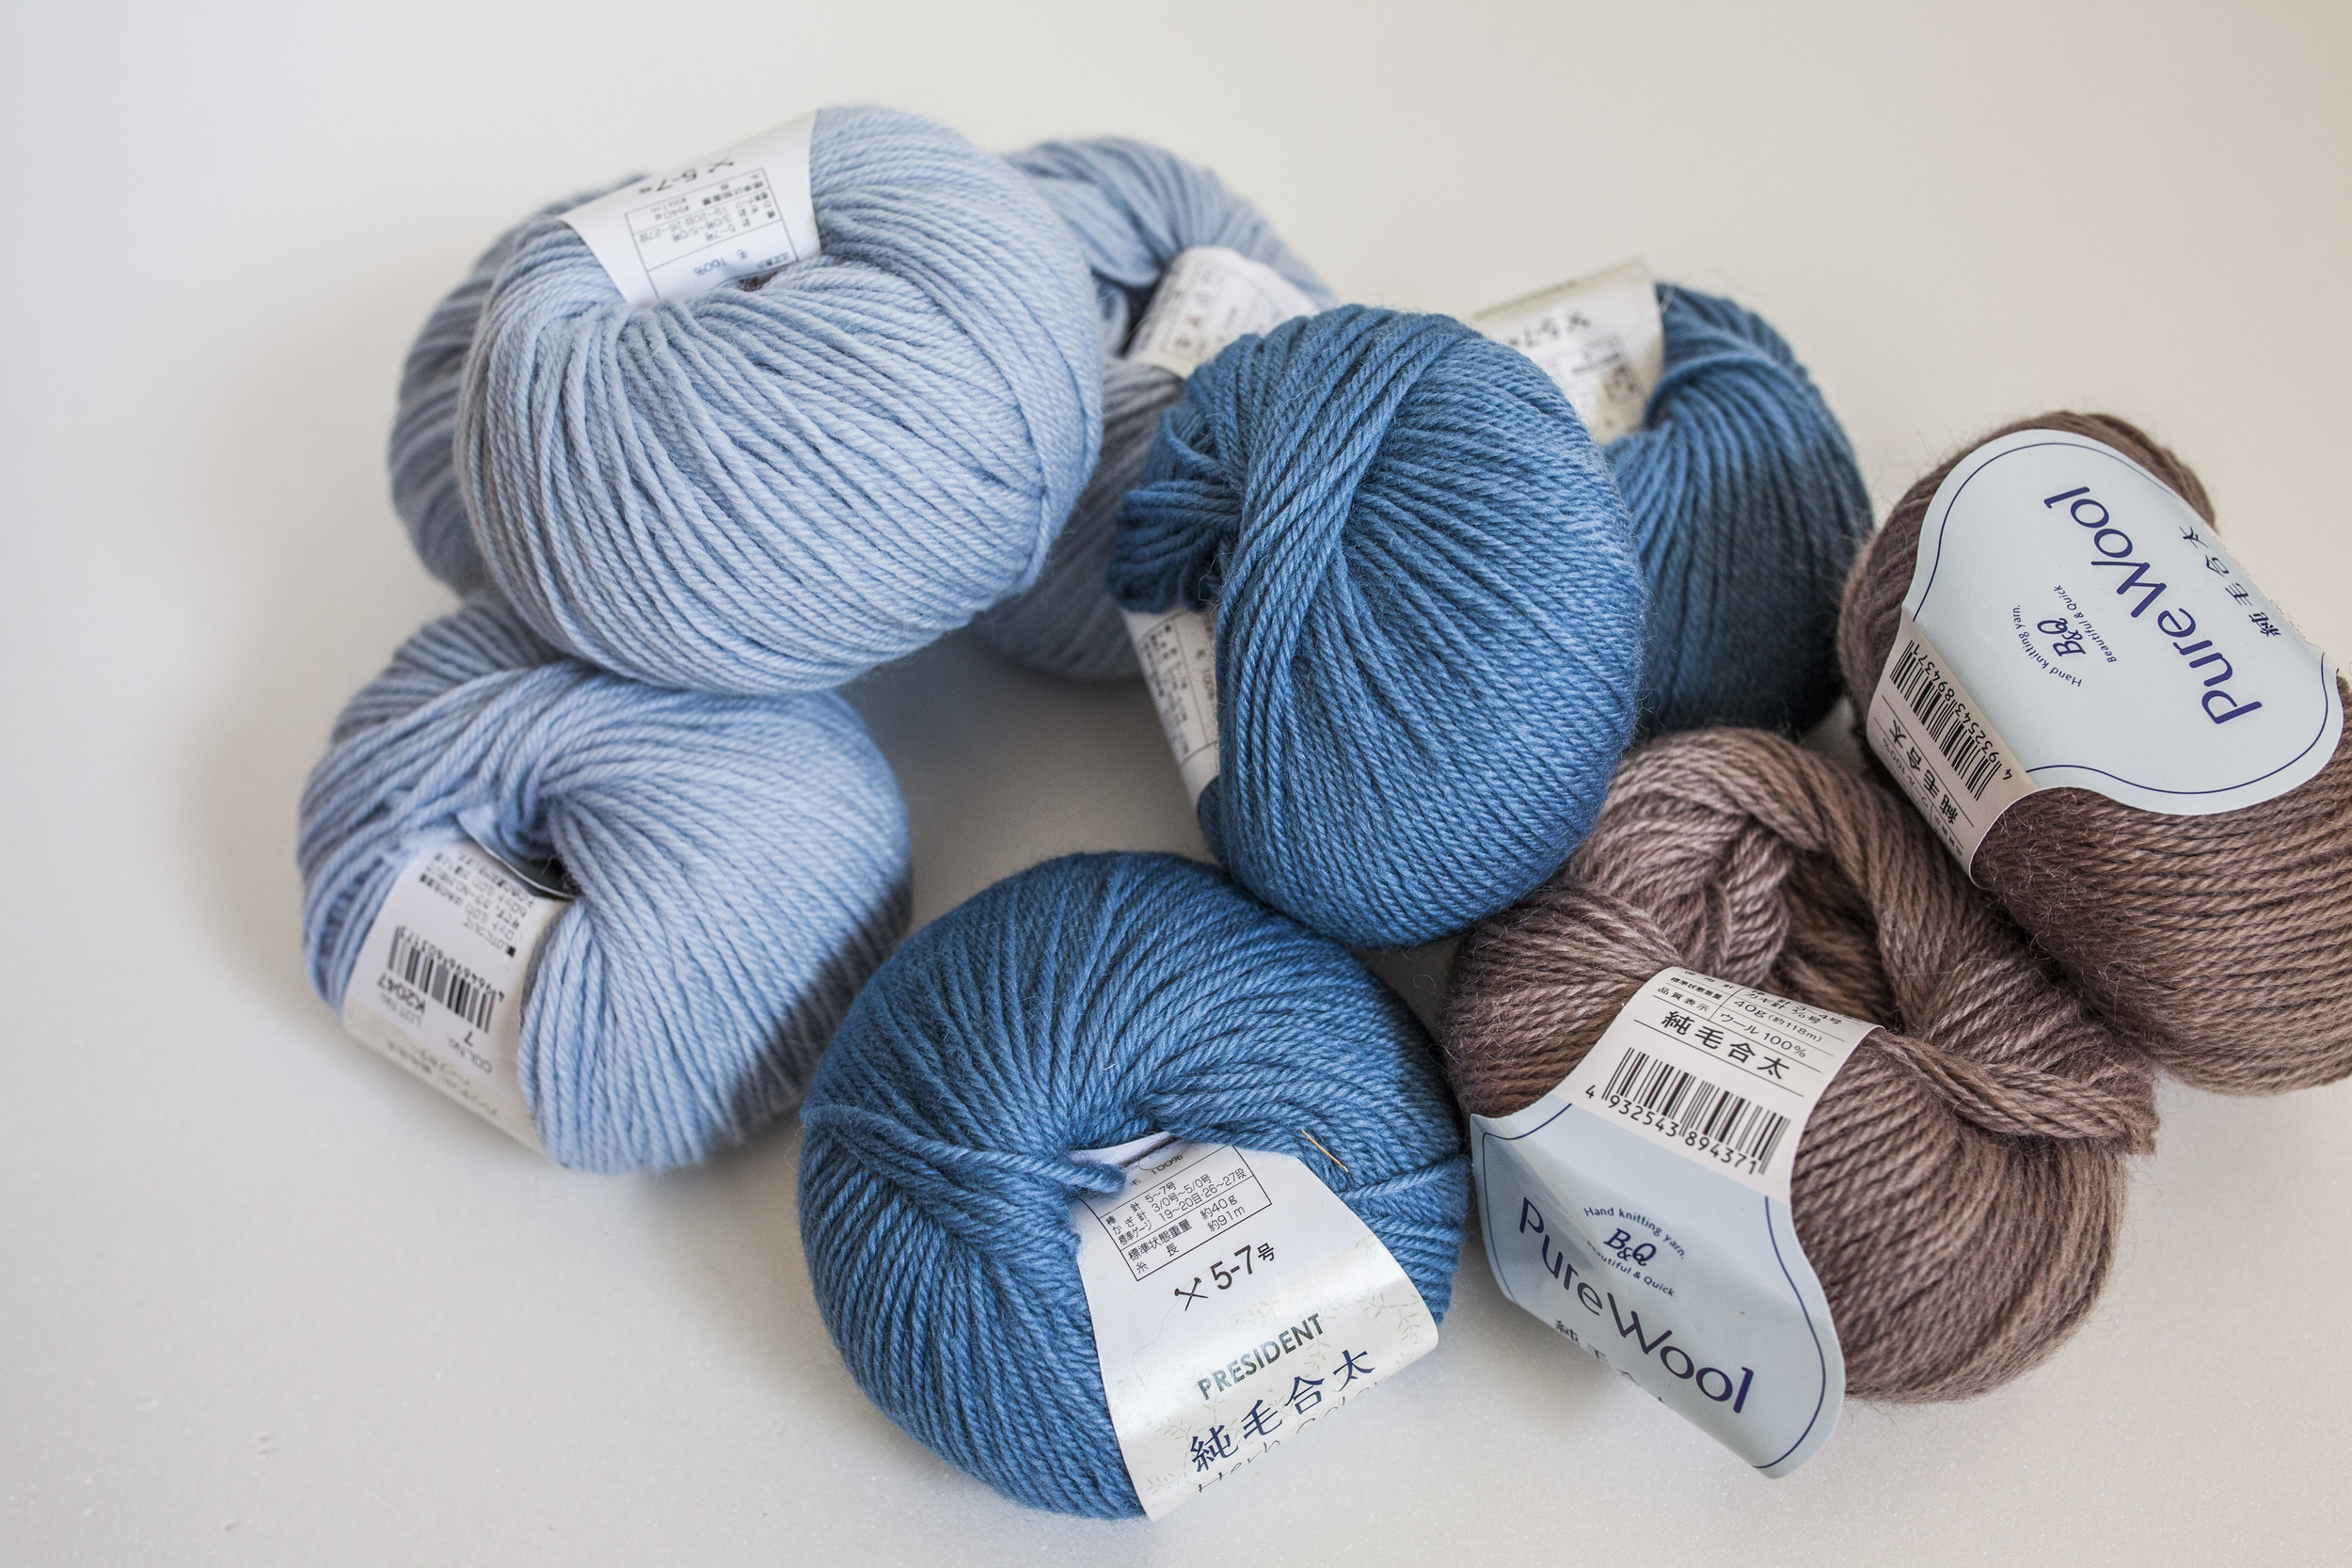 Yarns that I would never give away because they are so scratchy